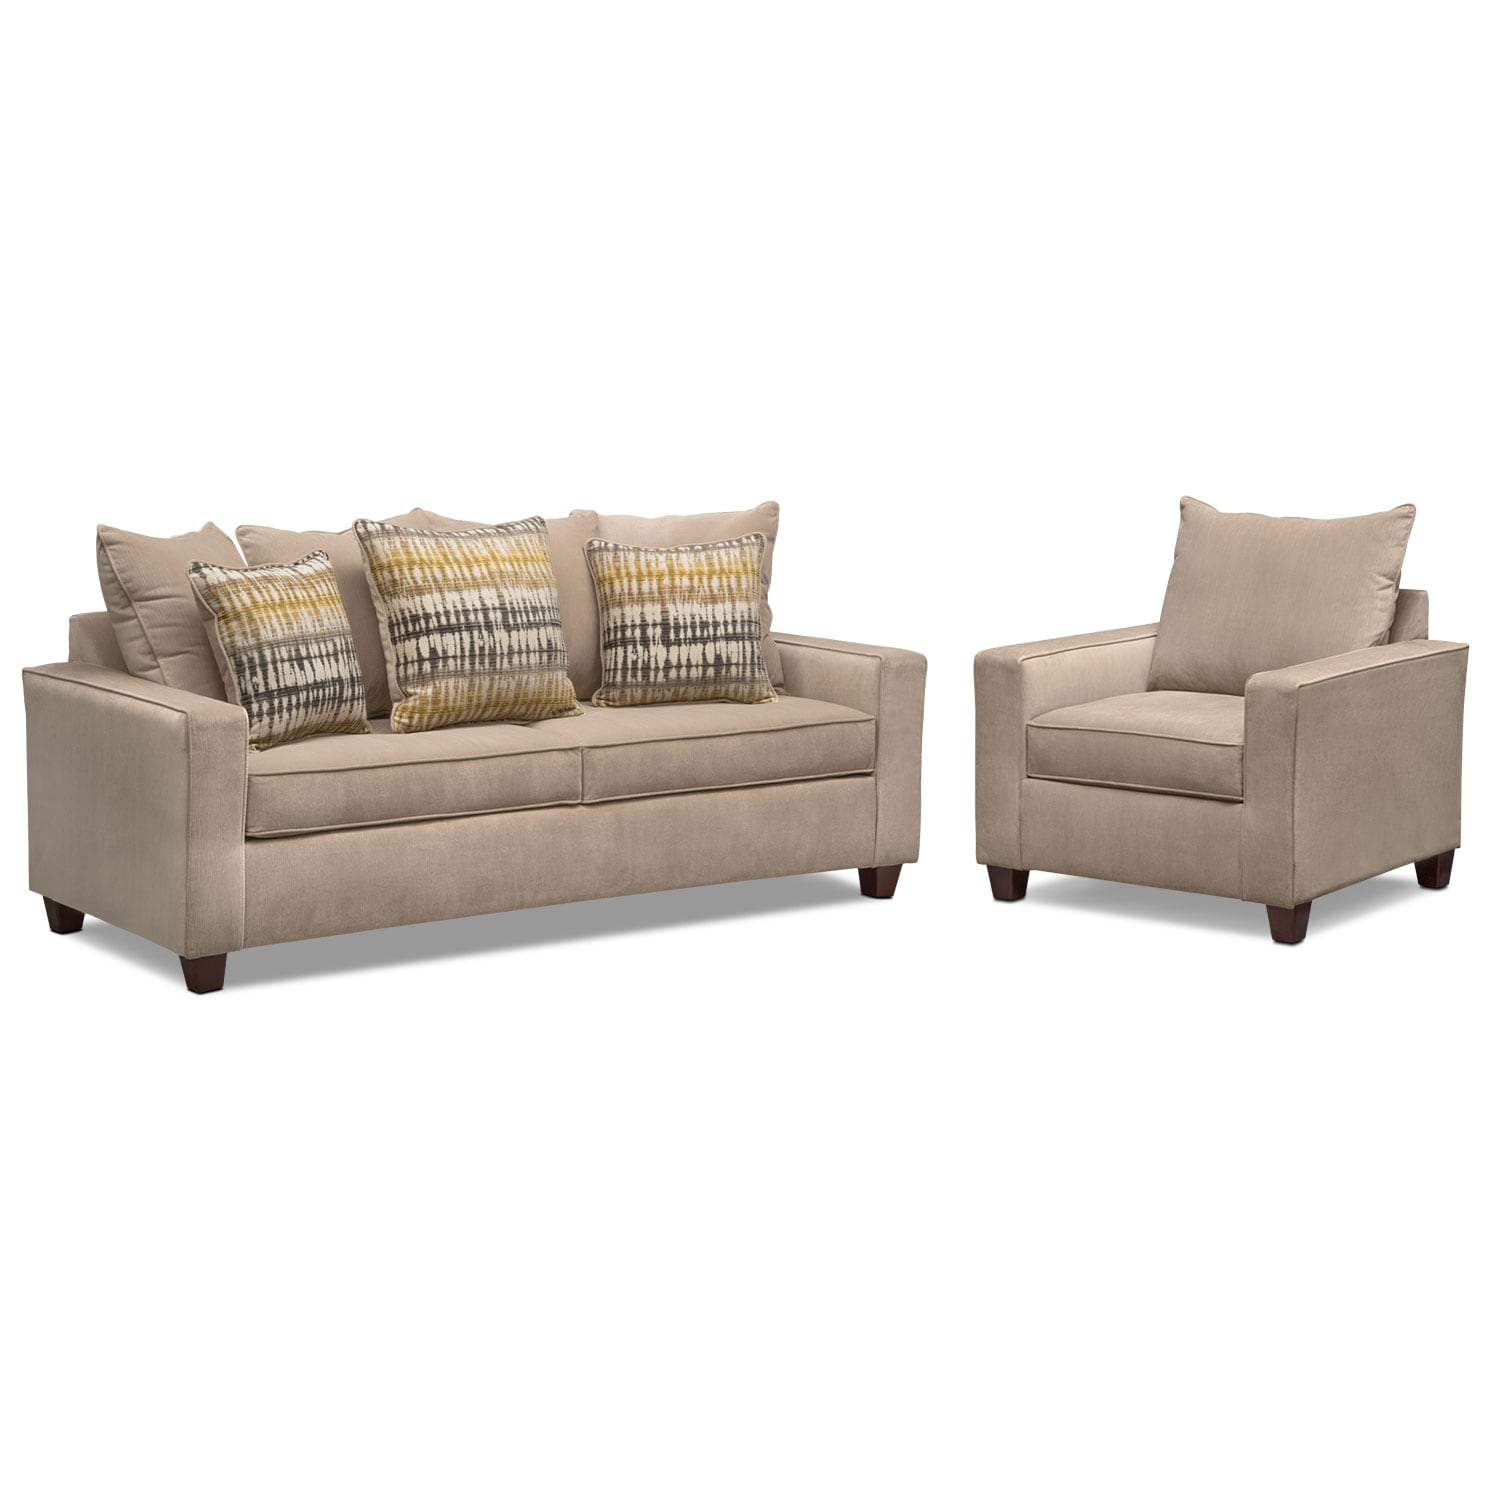 Living Room Furniture - Bryden Queen Innerspring Sleeper Sofa and Chair Set - Beige